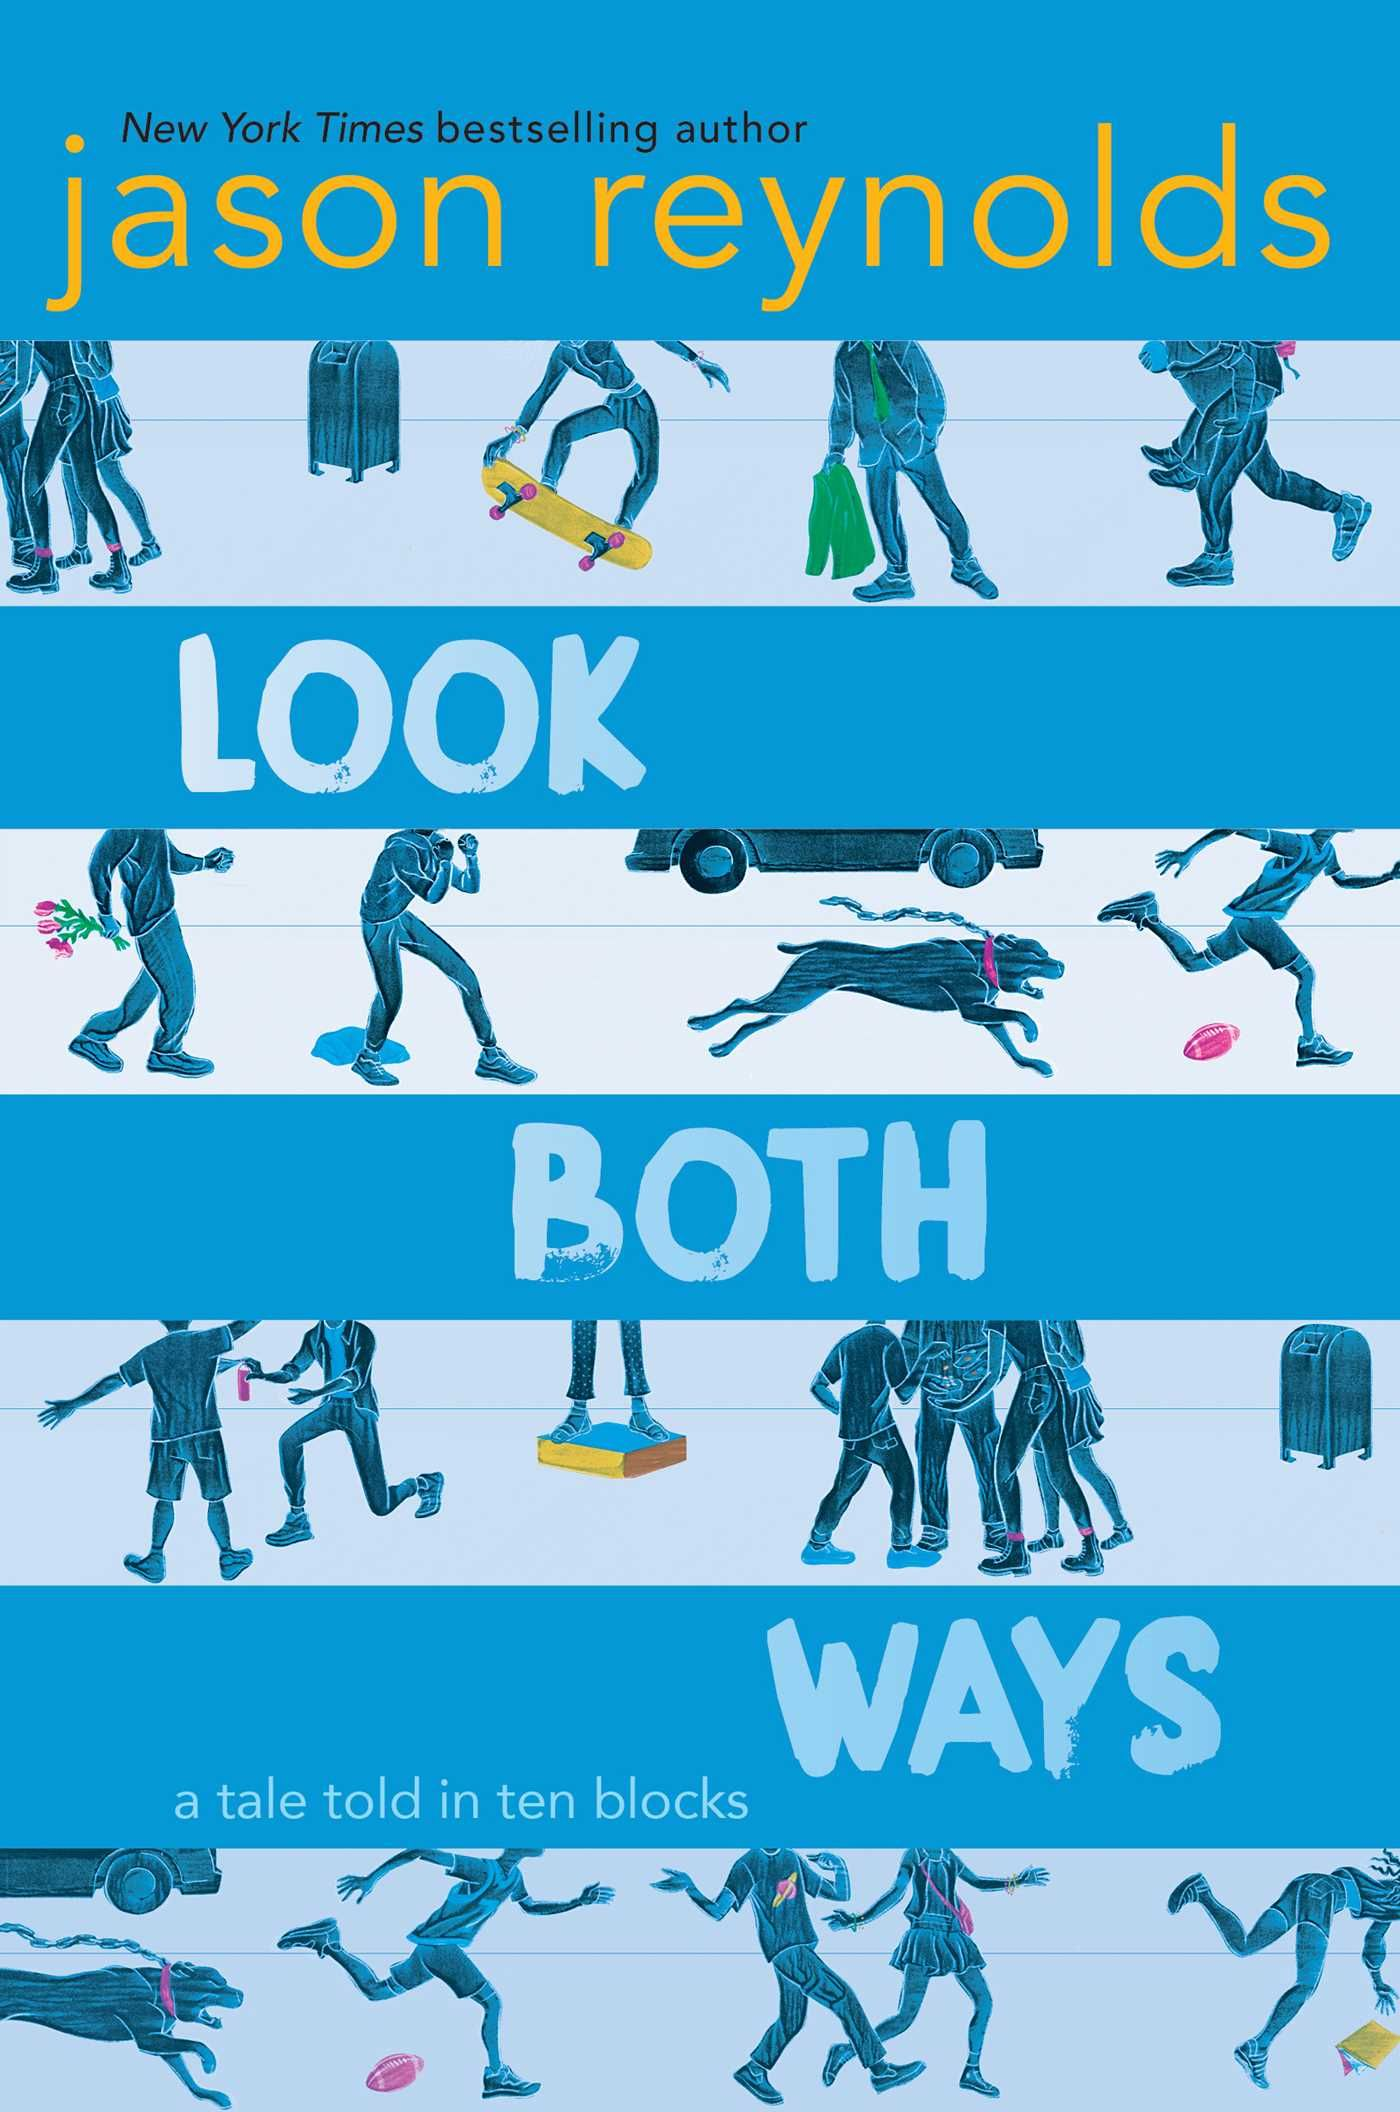 PDF] Download Look Both Ways by Jason Reynolds | Good books, Fiction books,  Book awards